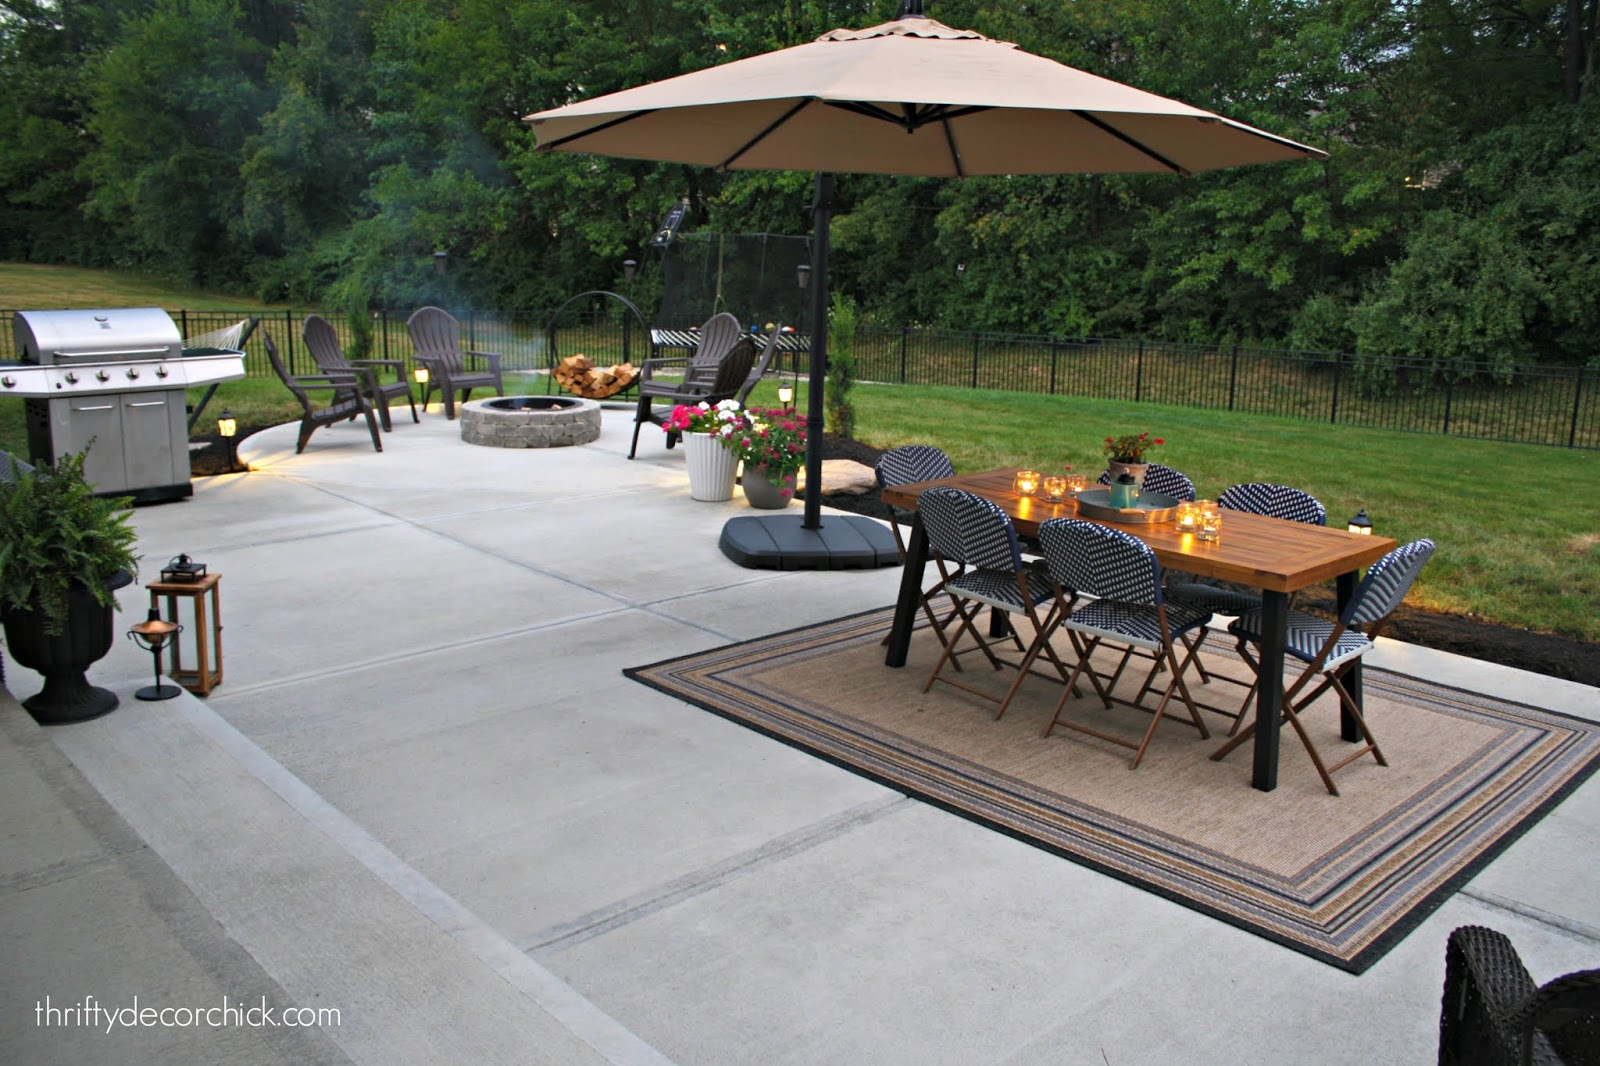 Large patio with outdoor dining and round fire pit